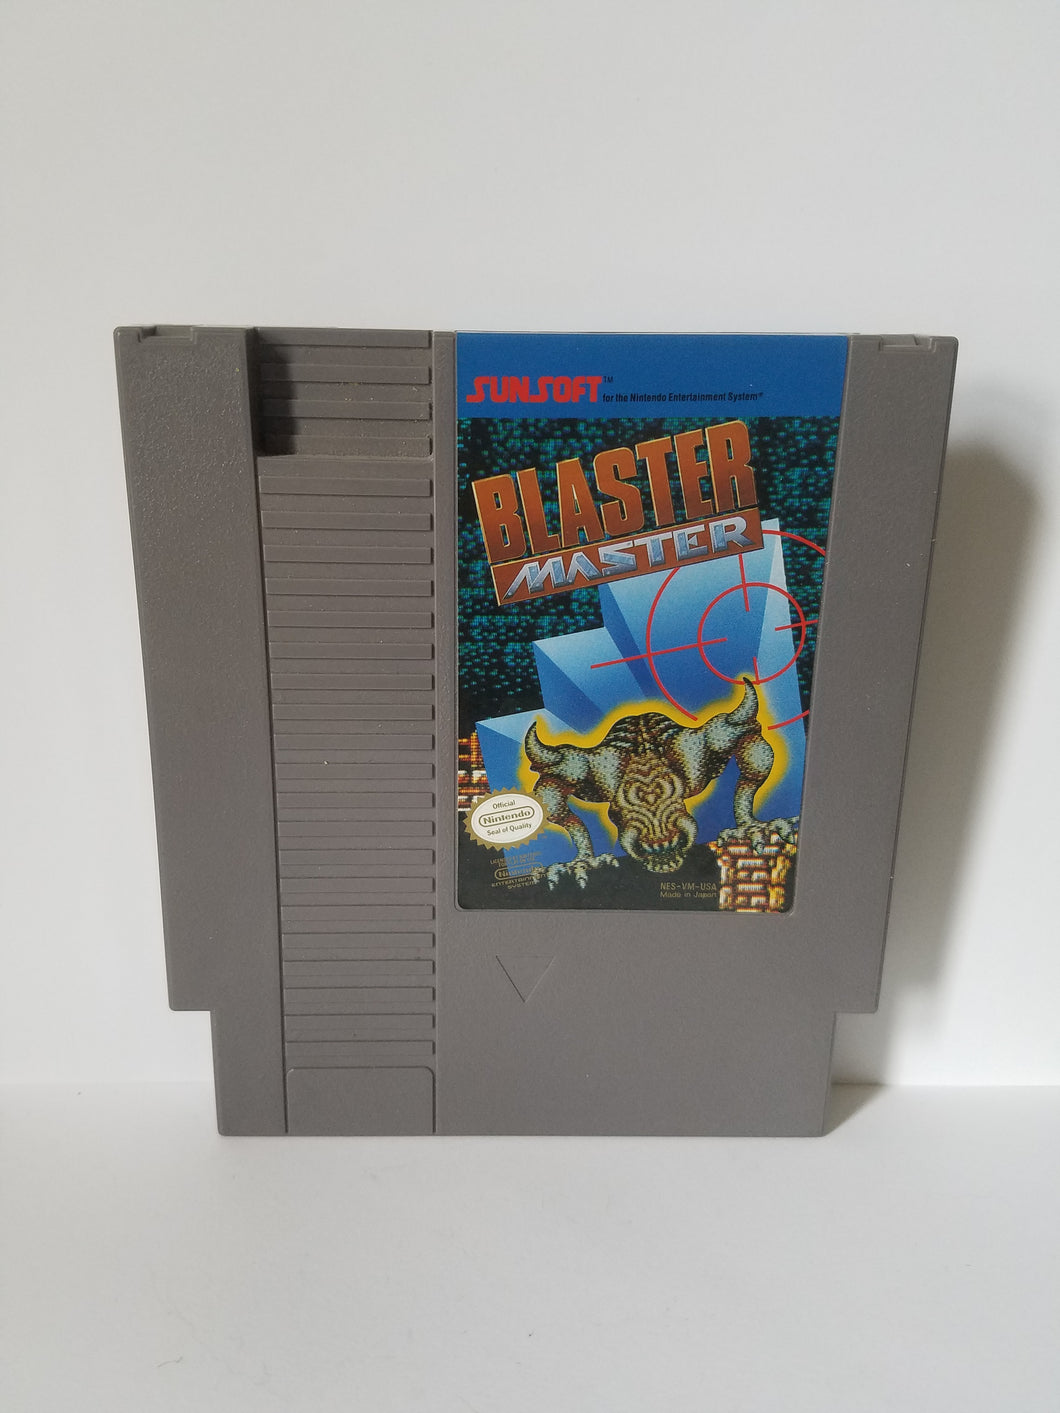 Nintendo Blaster Master SunSoft Game Cartridge